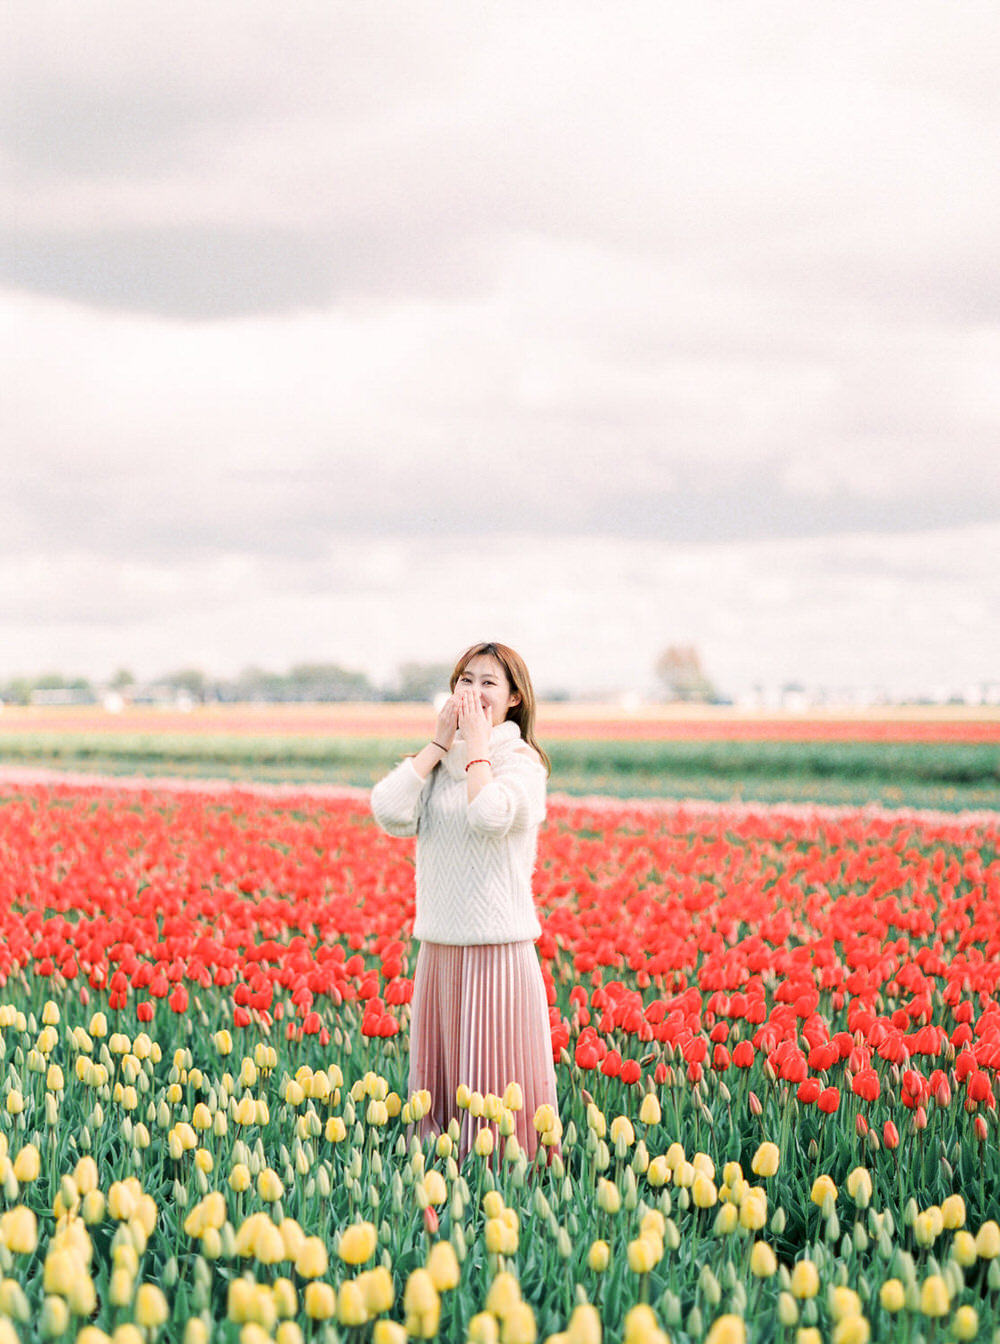 Keukenhof Lisse Tulip Field Portrait Photography - CHYMO & MORE